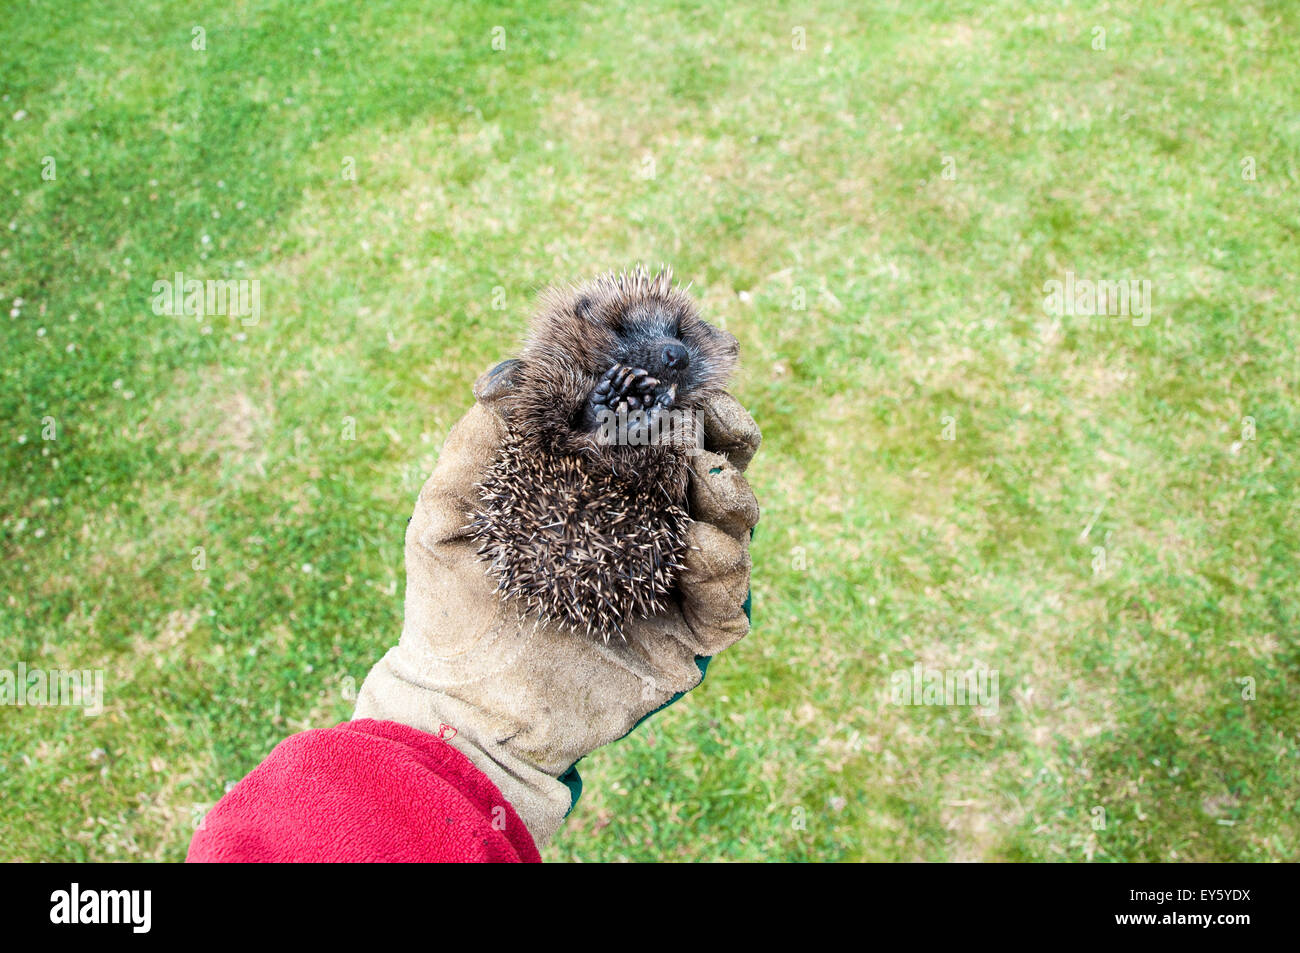 Gardener holding a young hedgehog - Stock Image